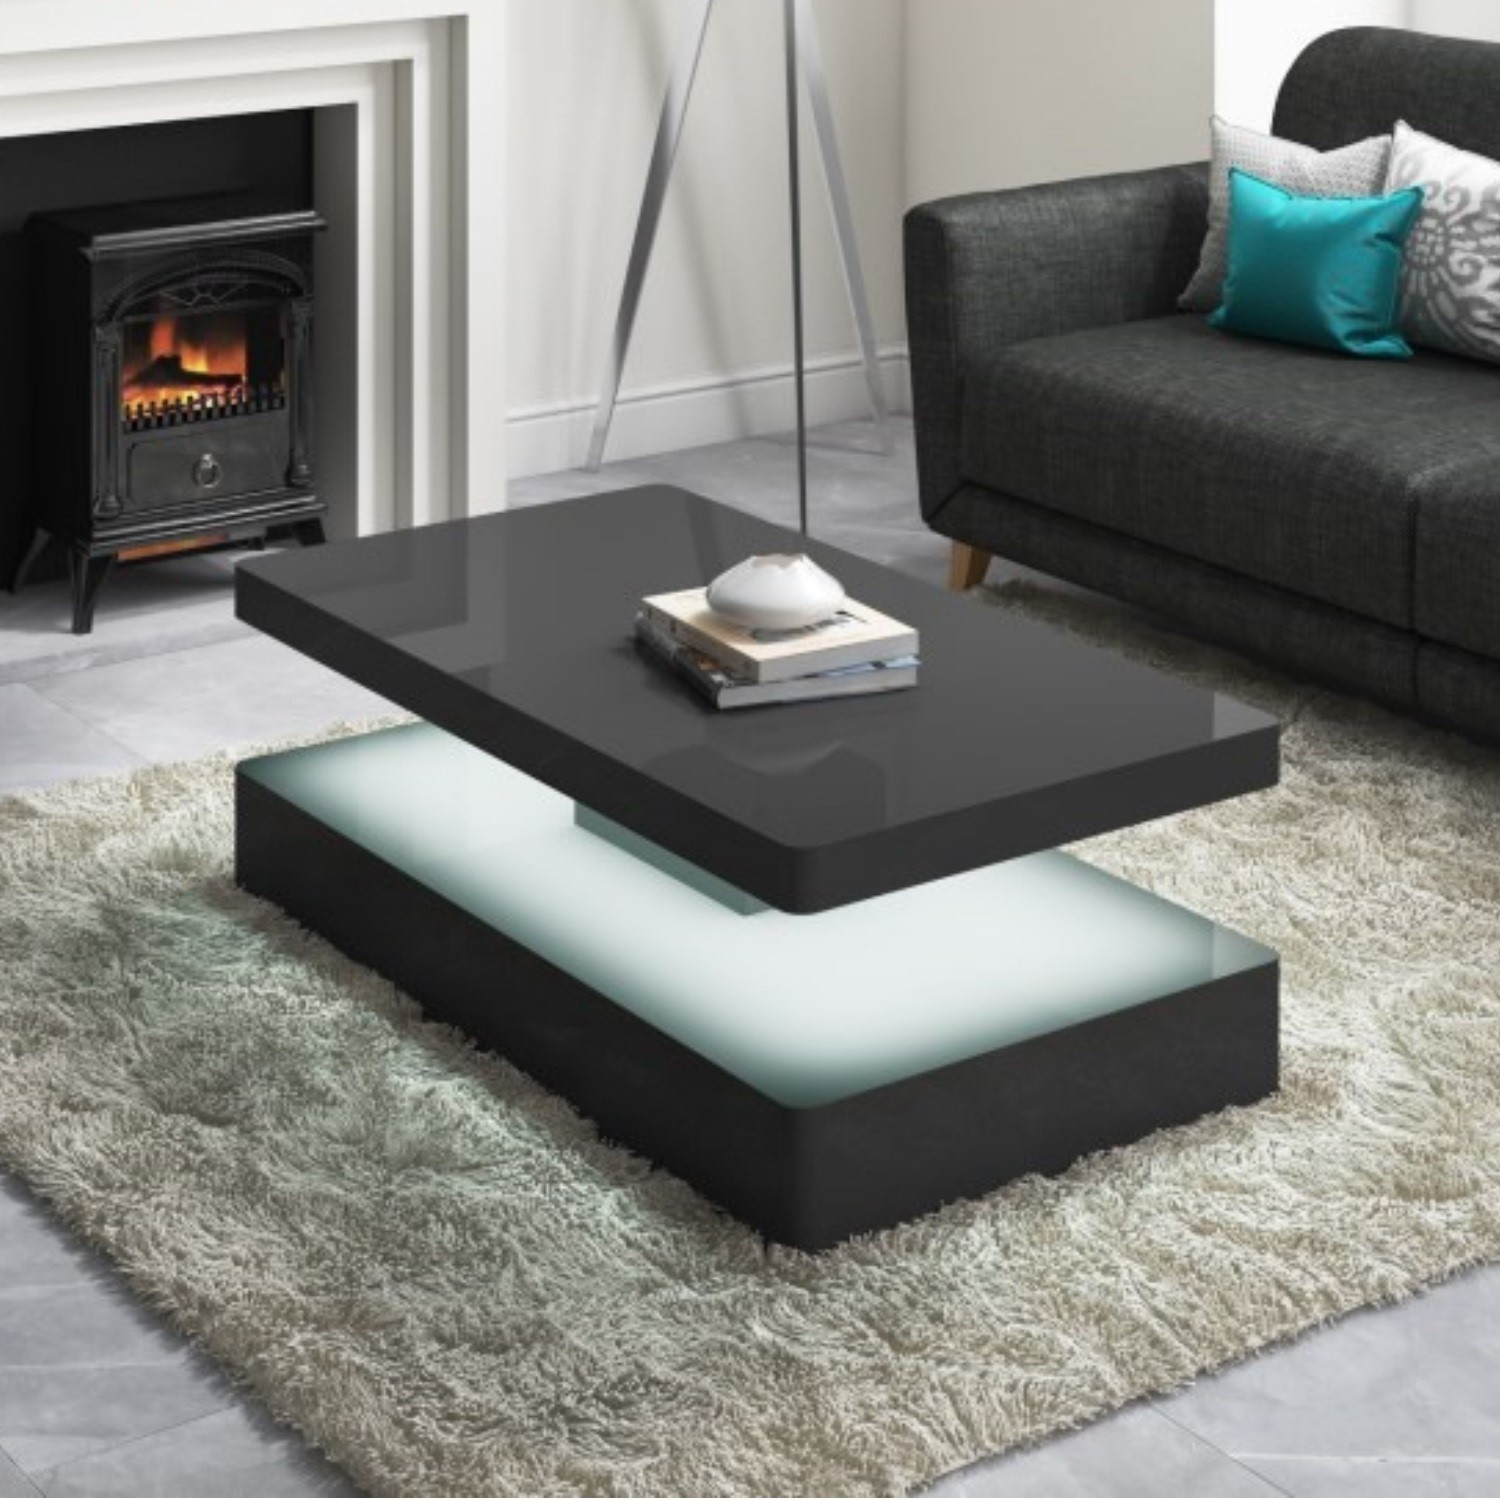 High Gloss Grey Coffee Table With LED Lighting   Tiffany Range